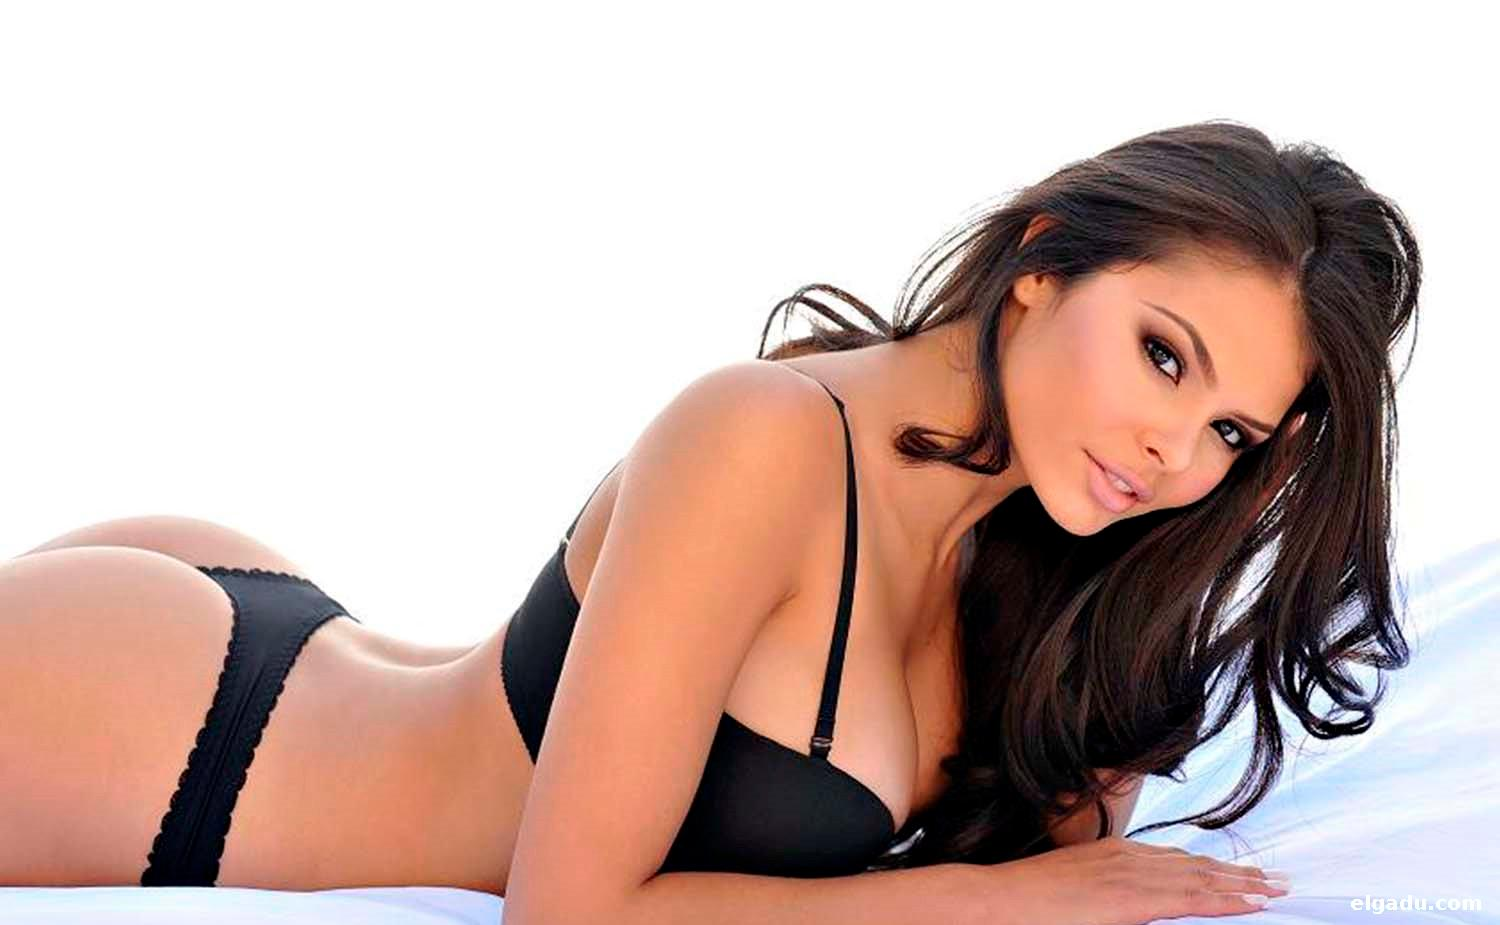 Think, that Alana campos playmate